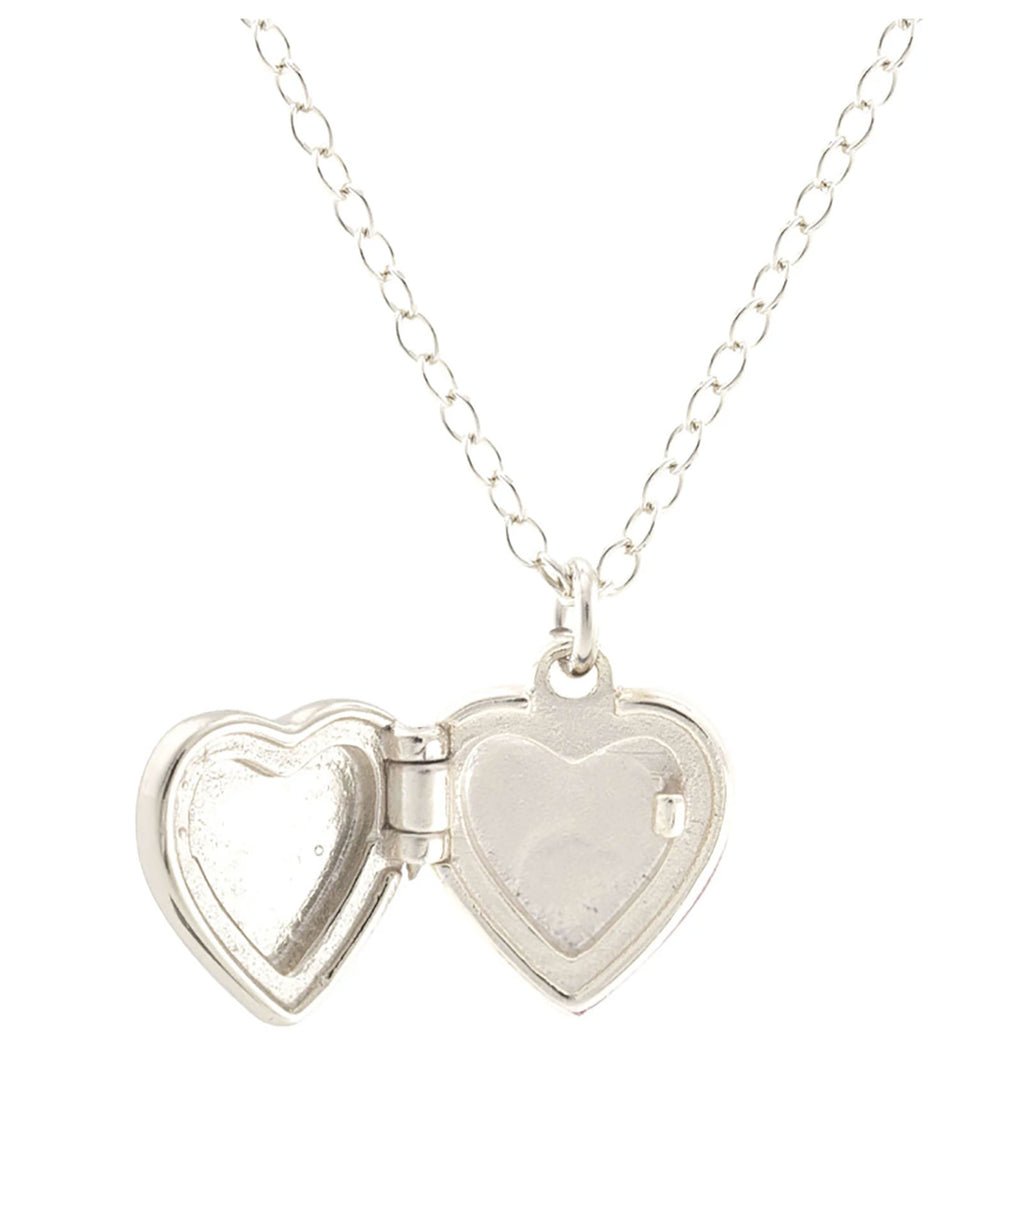 Kris Nations Small Silver Heart Locket